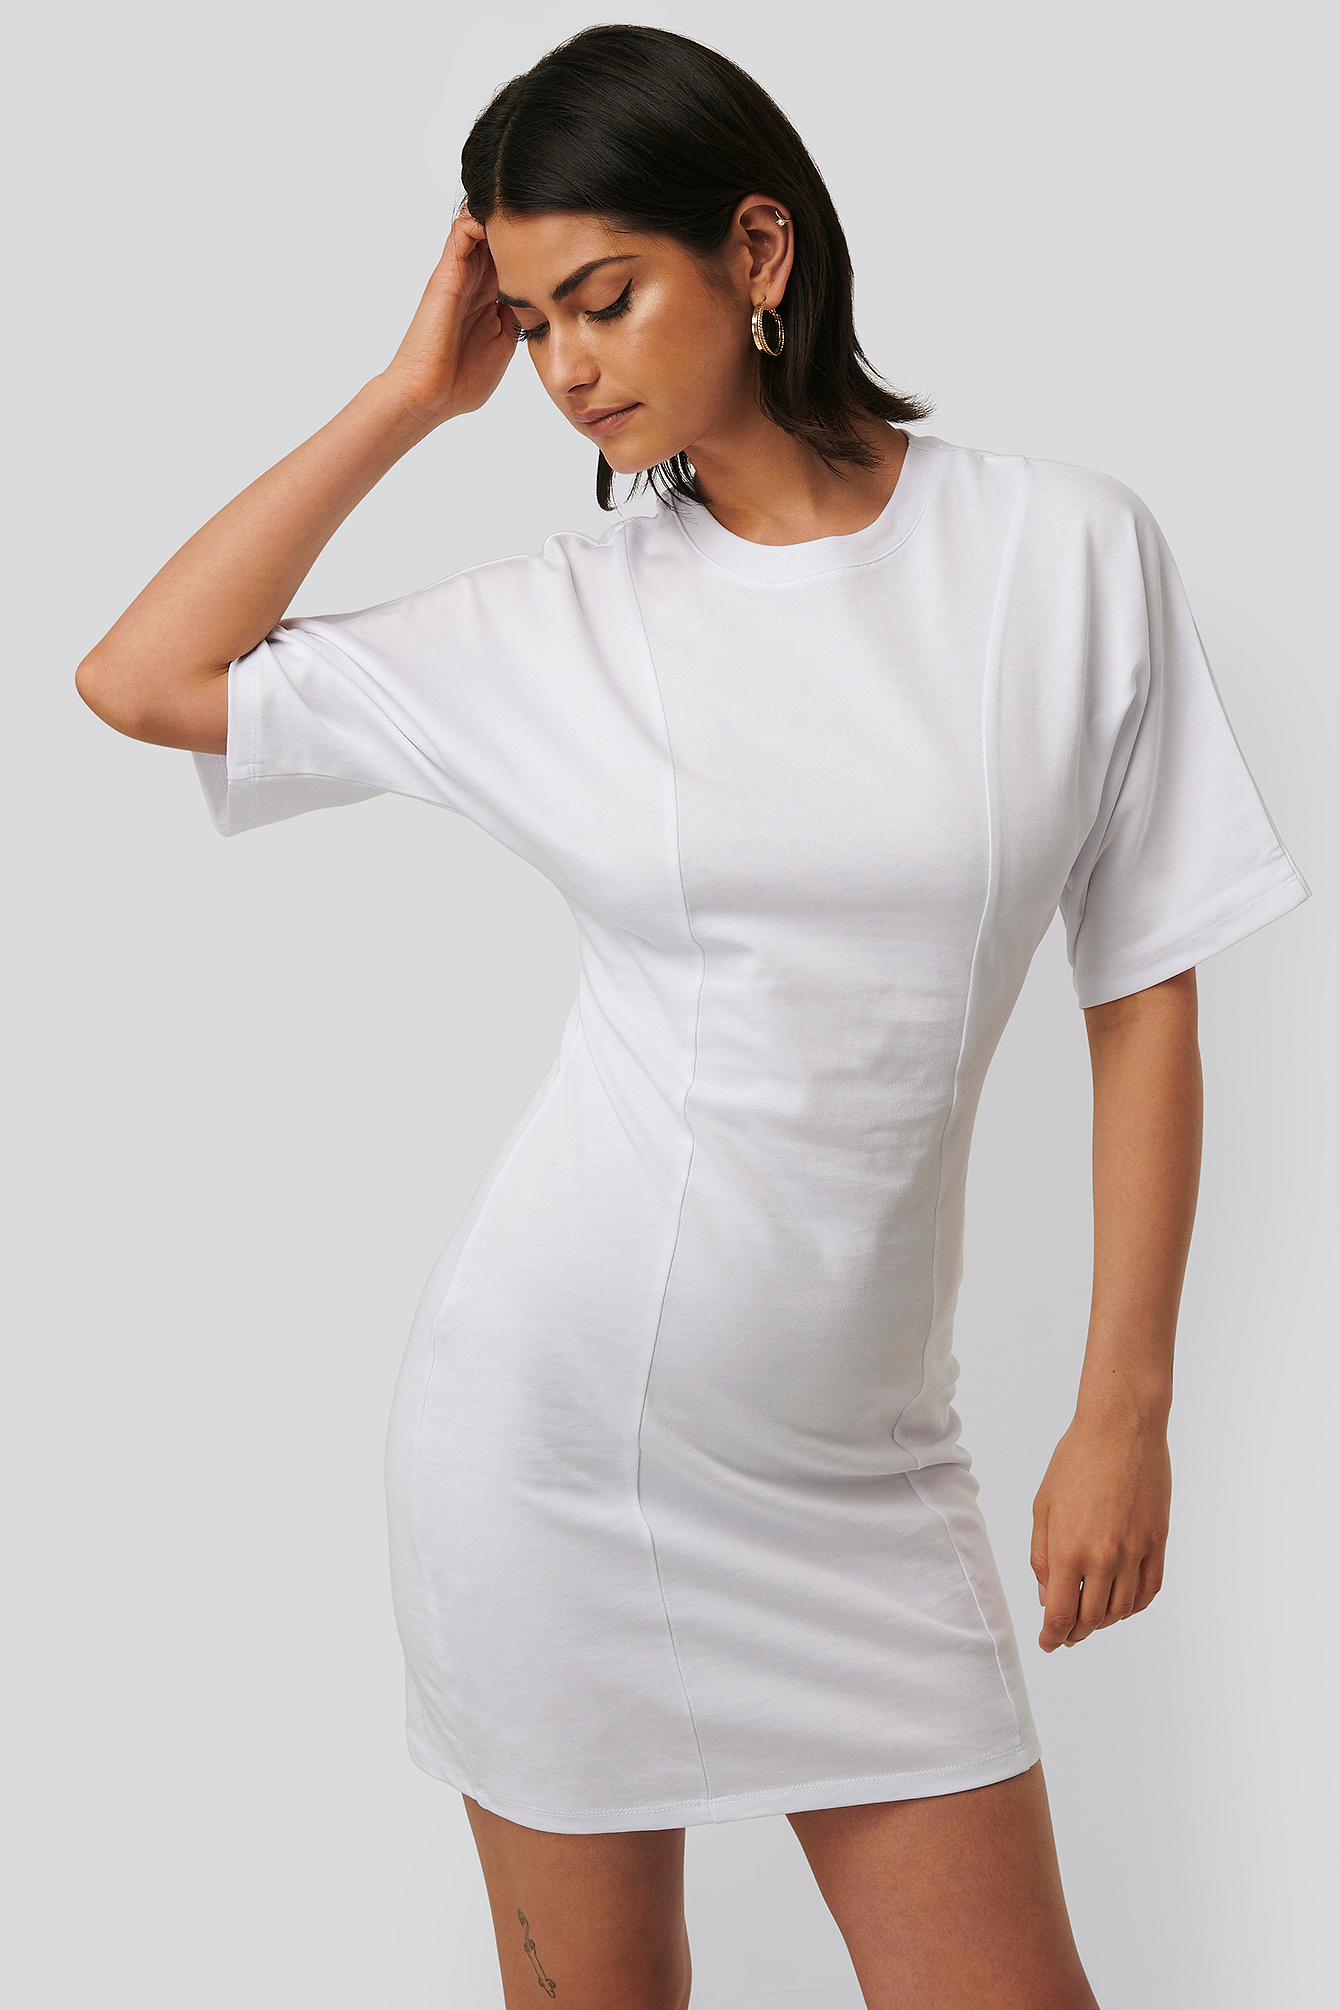 White Robe T-Shirt